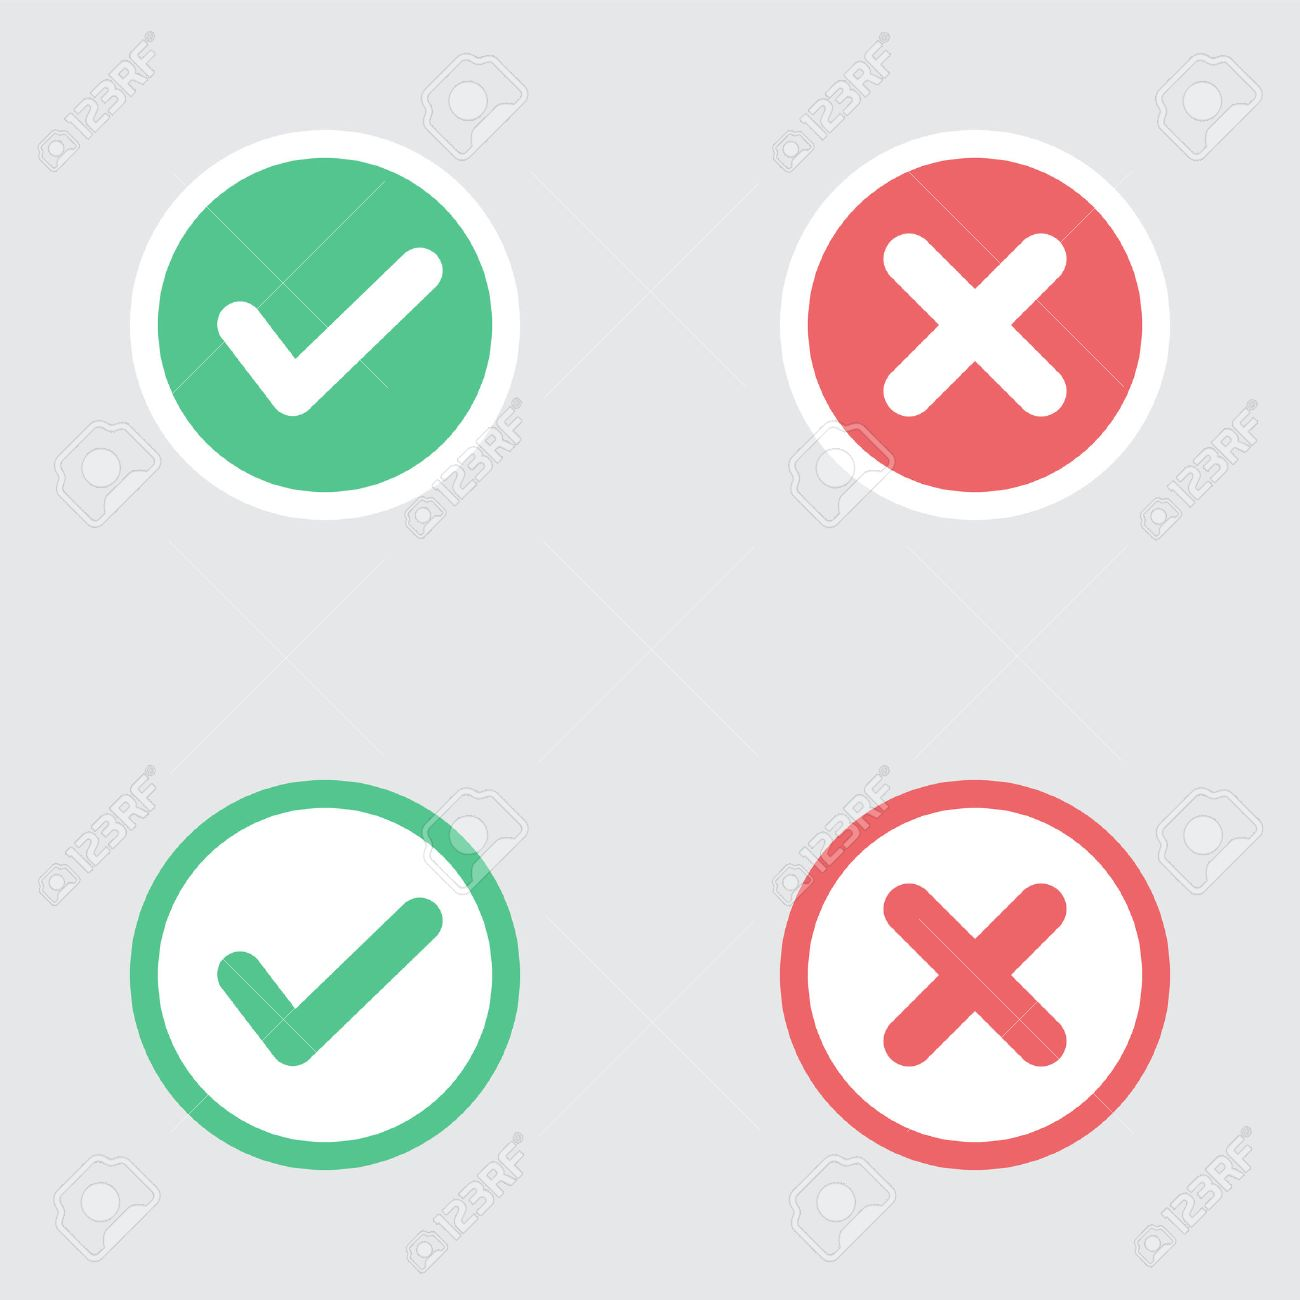 Vector Set of Flat Design Check Marks Icons. Different Variations of Ticks and Crosses Represents Confirmation, Right and Wrong Choices, Task Completion, Voting. - 40707235